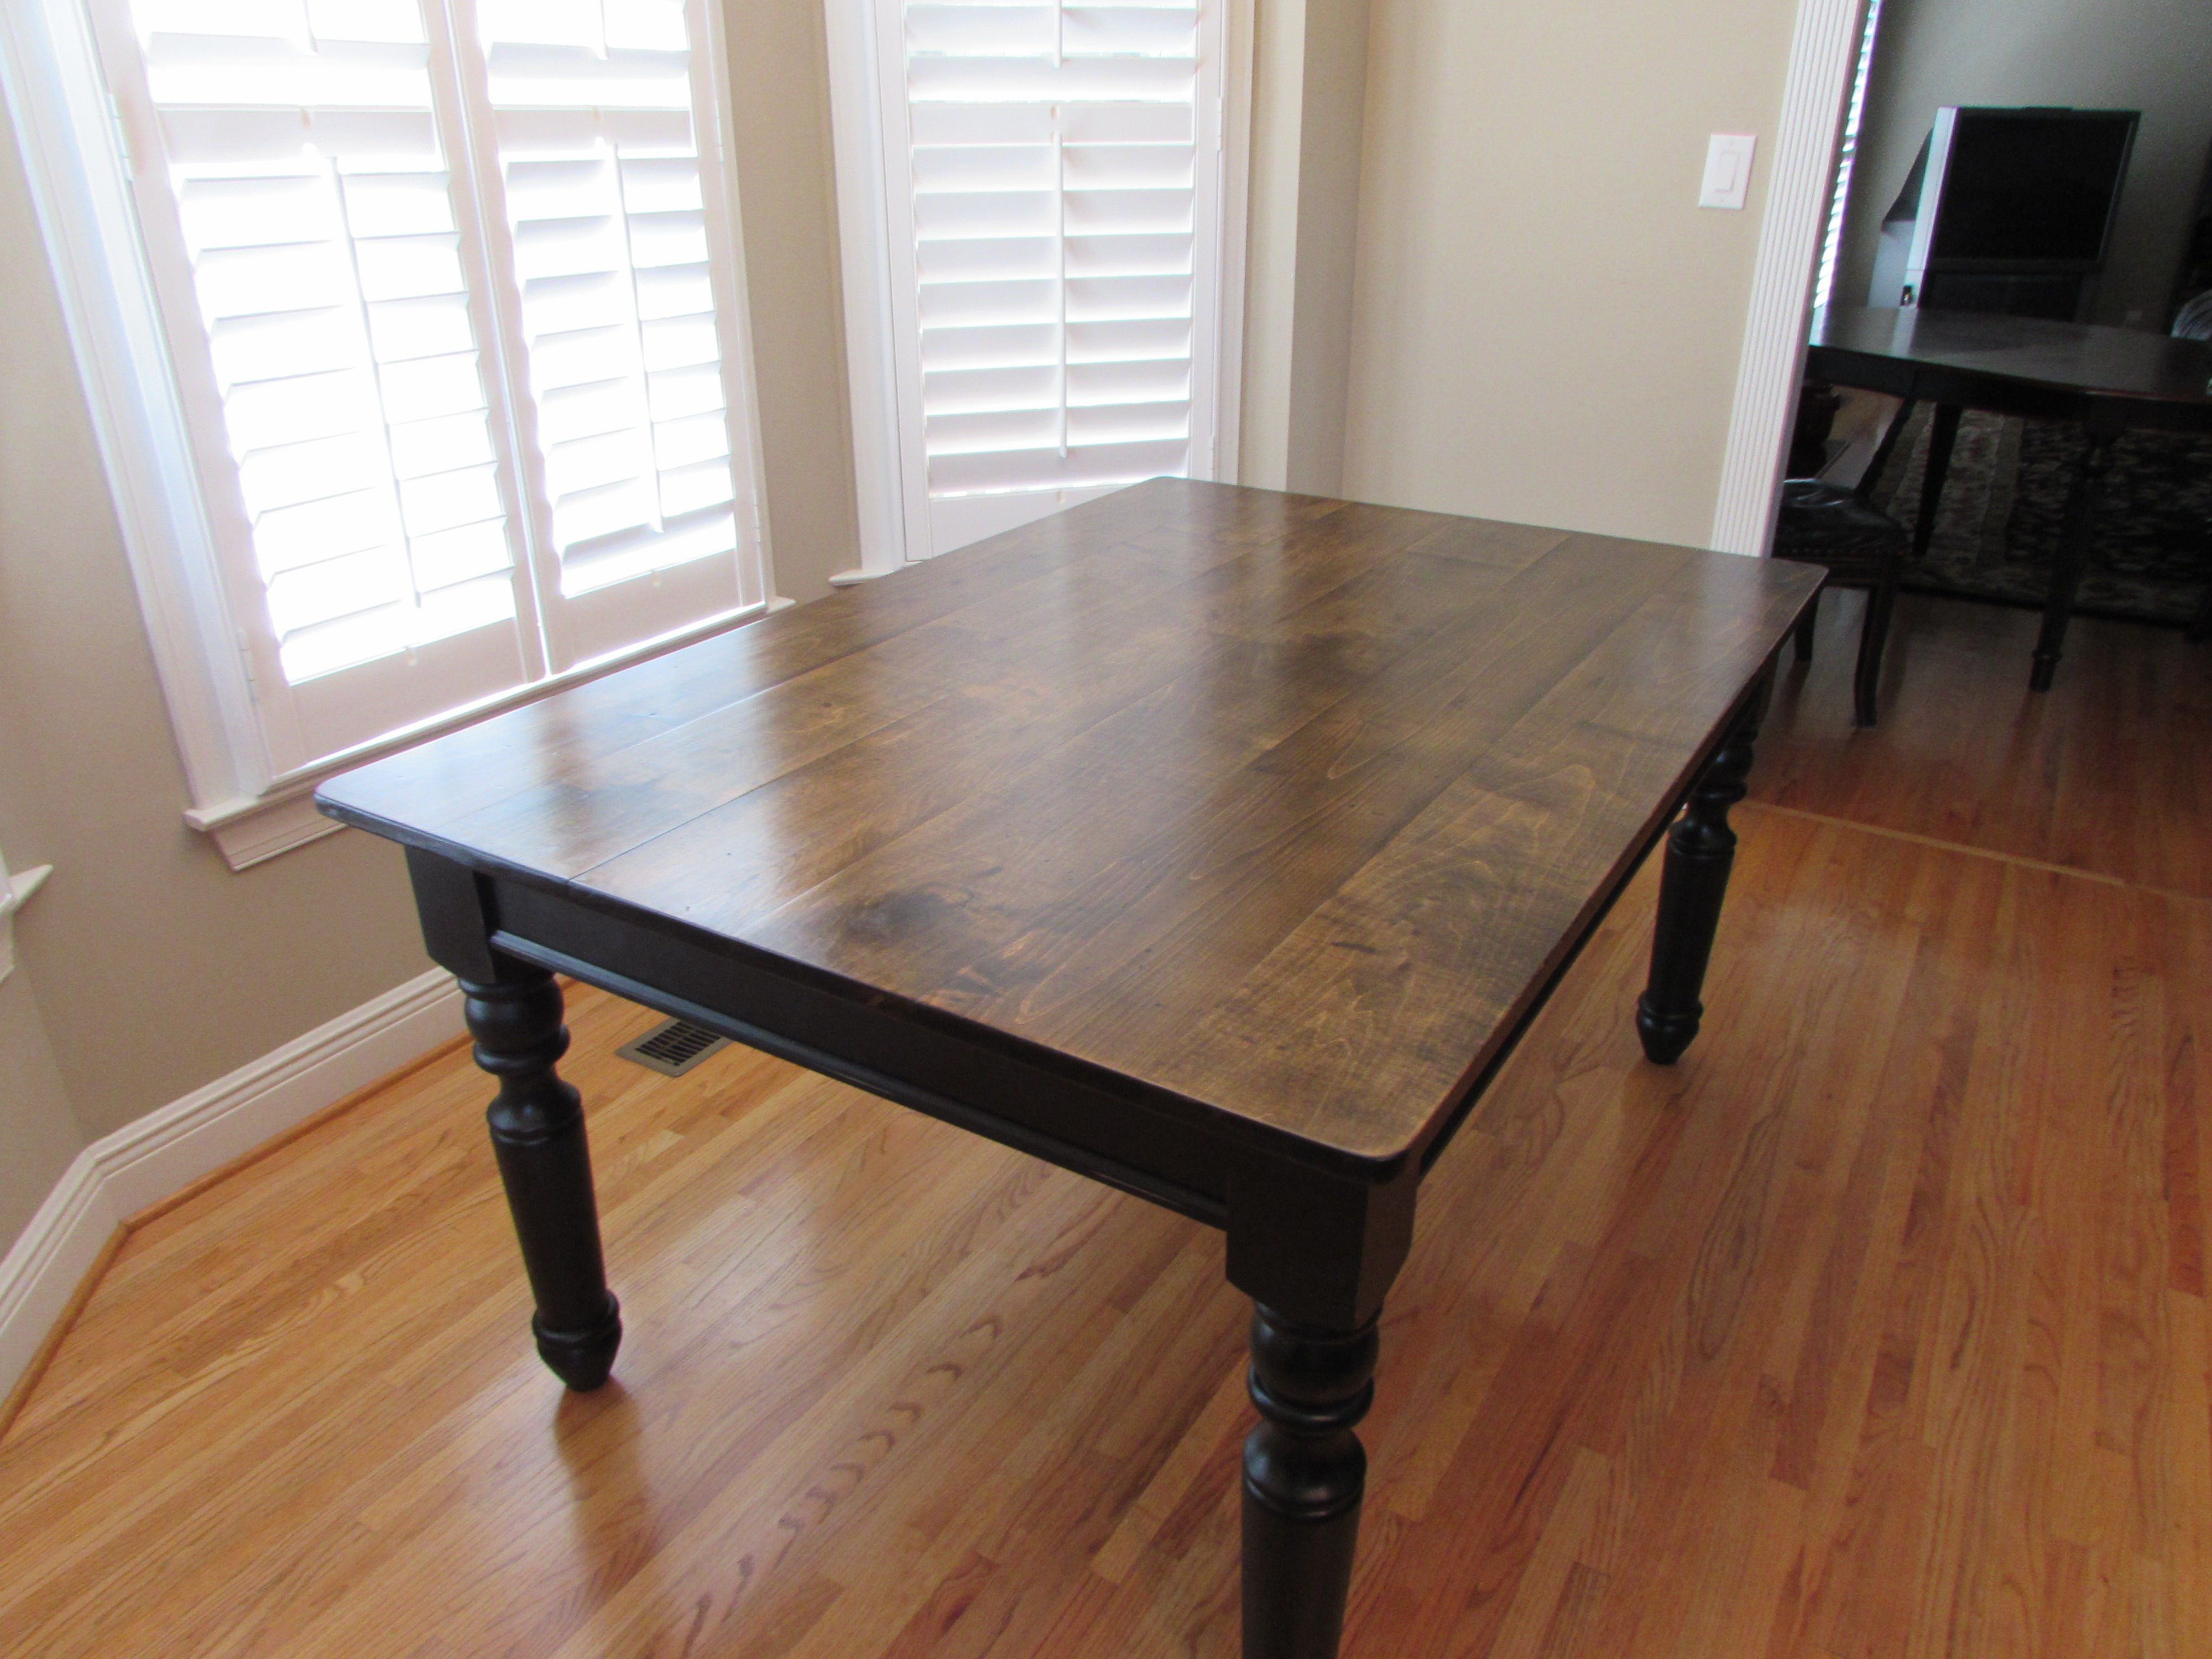 p refinishing kitchen table CUSTOM FARM KITCHEN TABLE 42